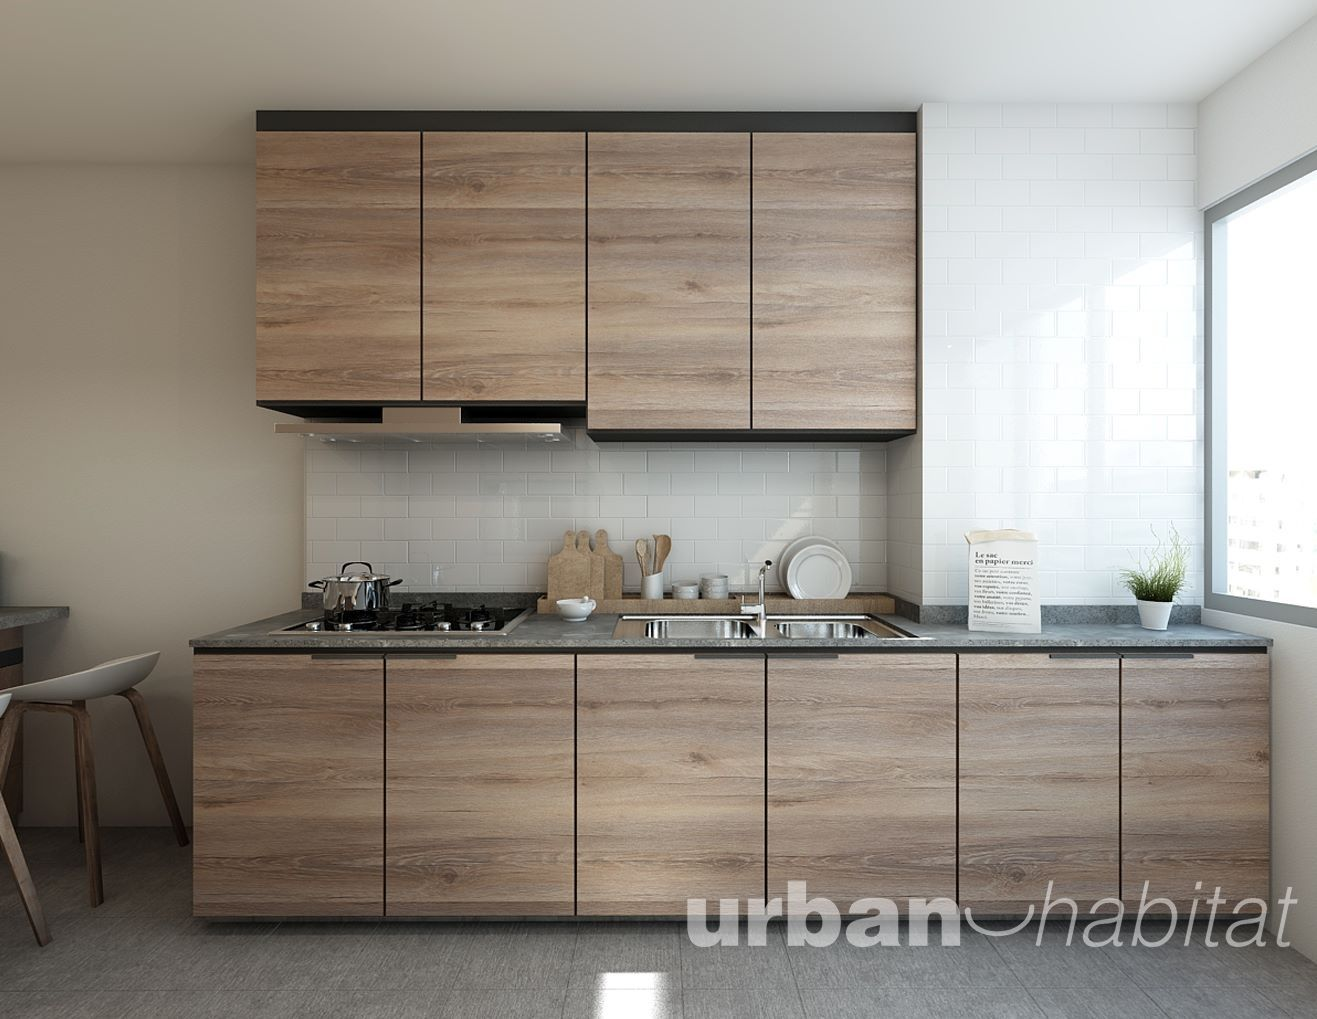 Kitchen Design Ideas Singapore hdb 3-room resale modern eclectic @ serangoon north - interior